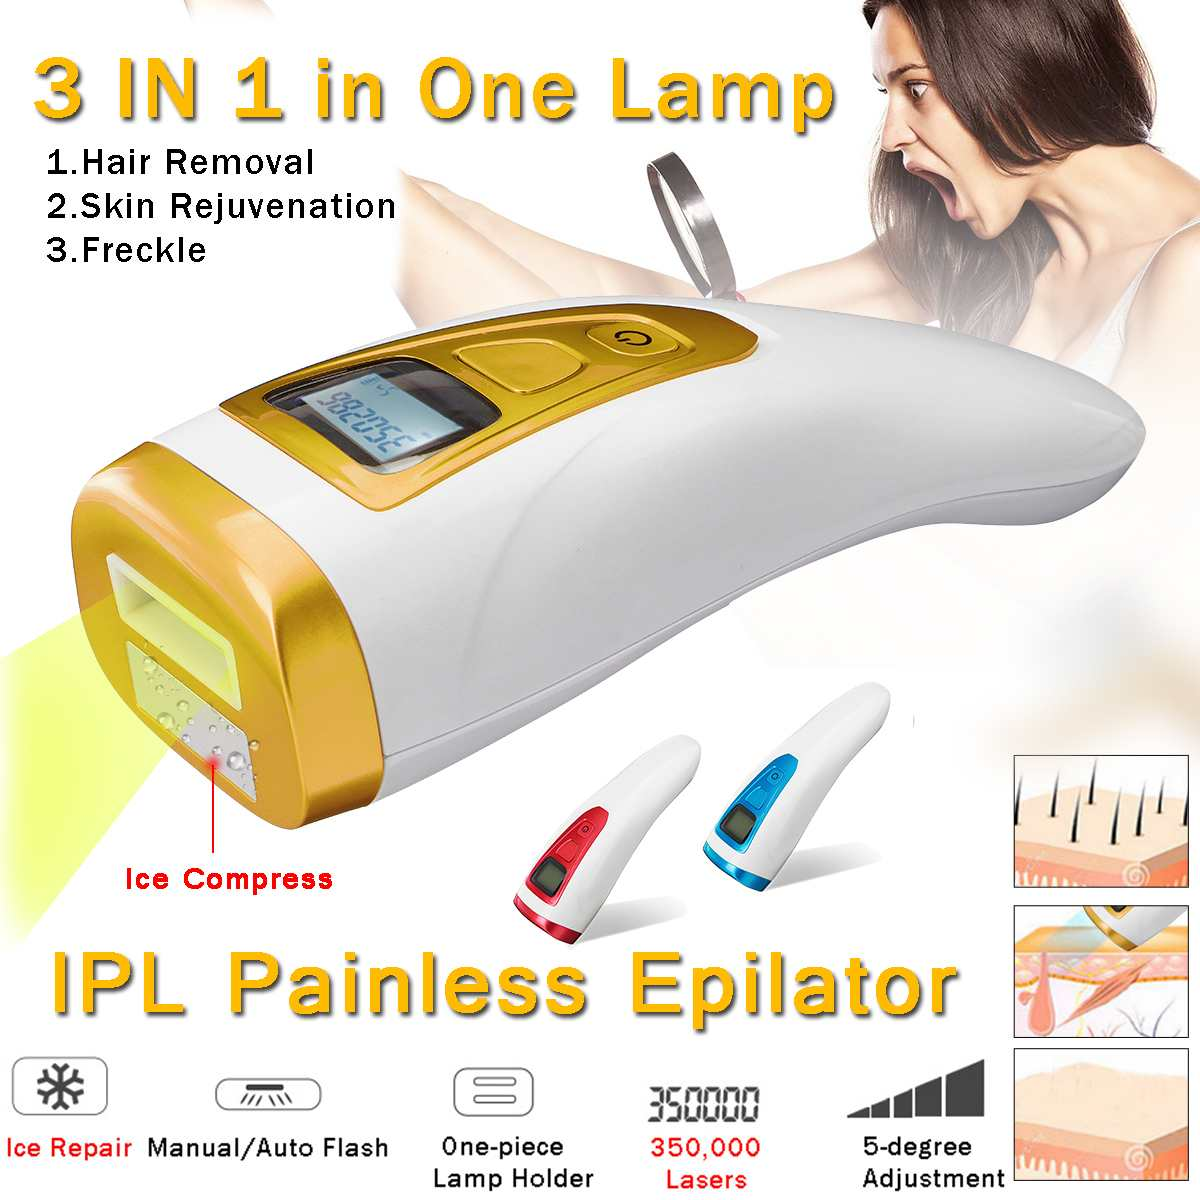 Hair Removal Epilator 5 Gears Painless Laser Mini Facial Bikini Armpit Permanent Device US/EU Plug 100-240V Permanent ColorsHair Removal Epilator 5 Gears Painless Laser Mini Facial Bikini Armpit Permanent Device US/EU Plug 100-240V Permanent Colors